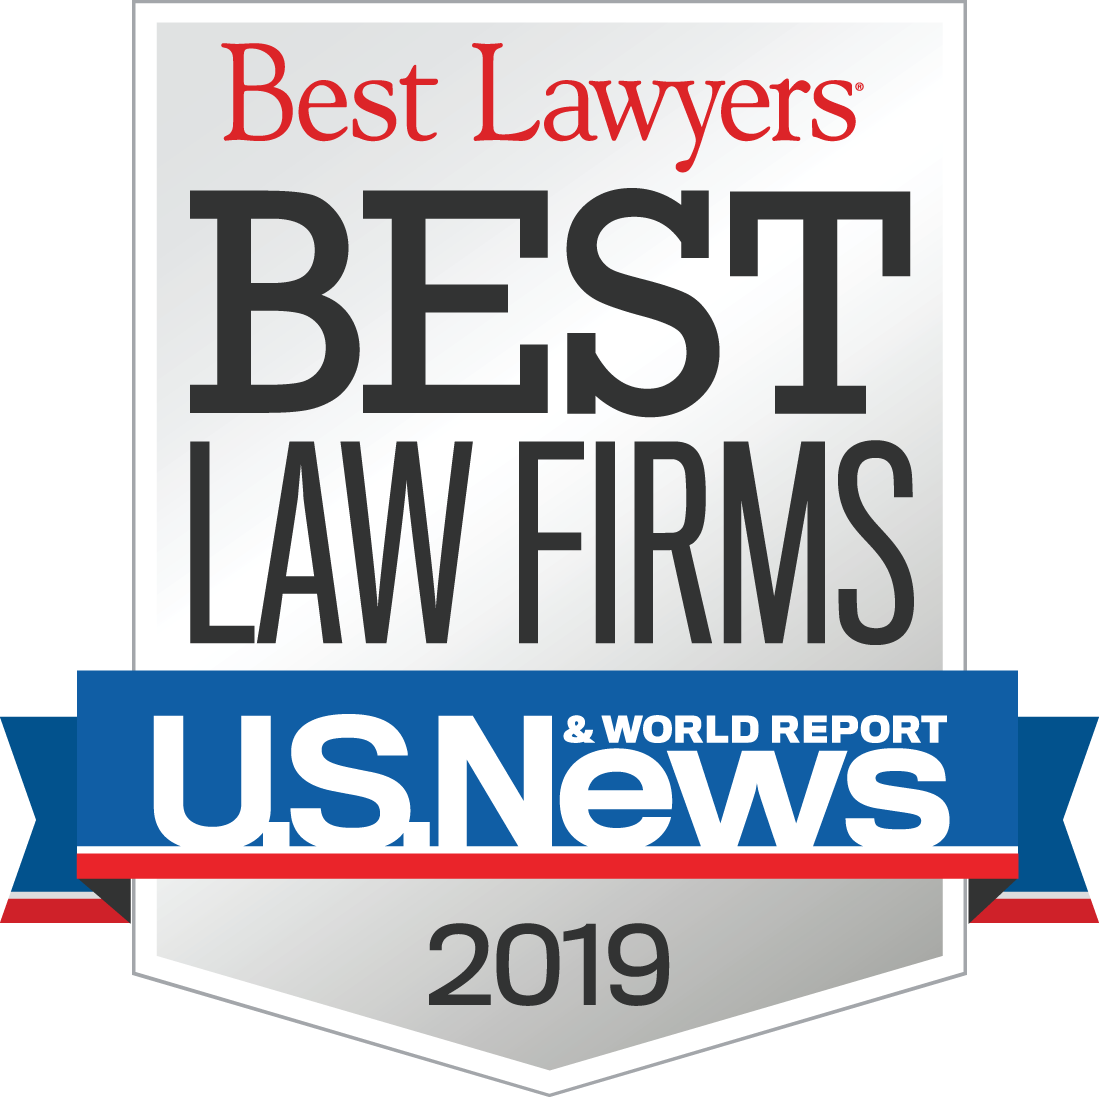 Best Lawyers US News 2019